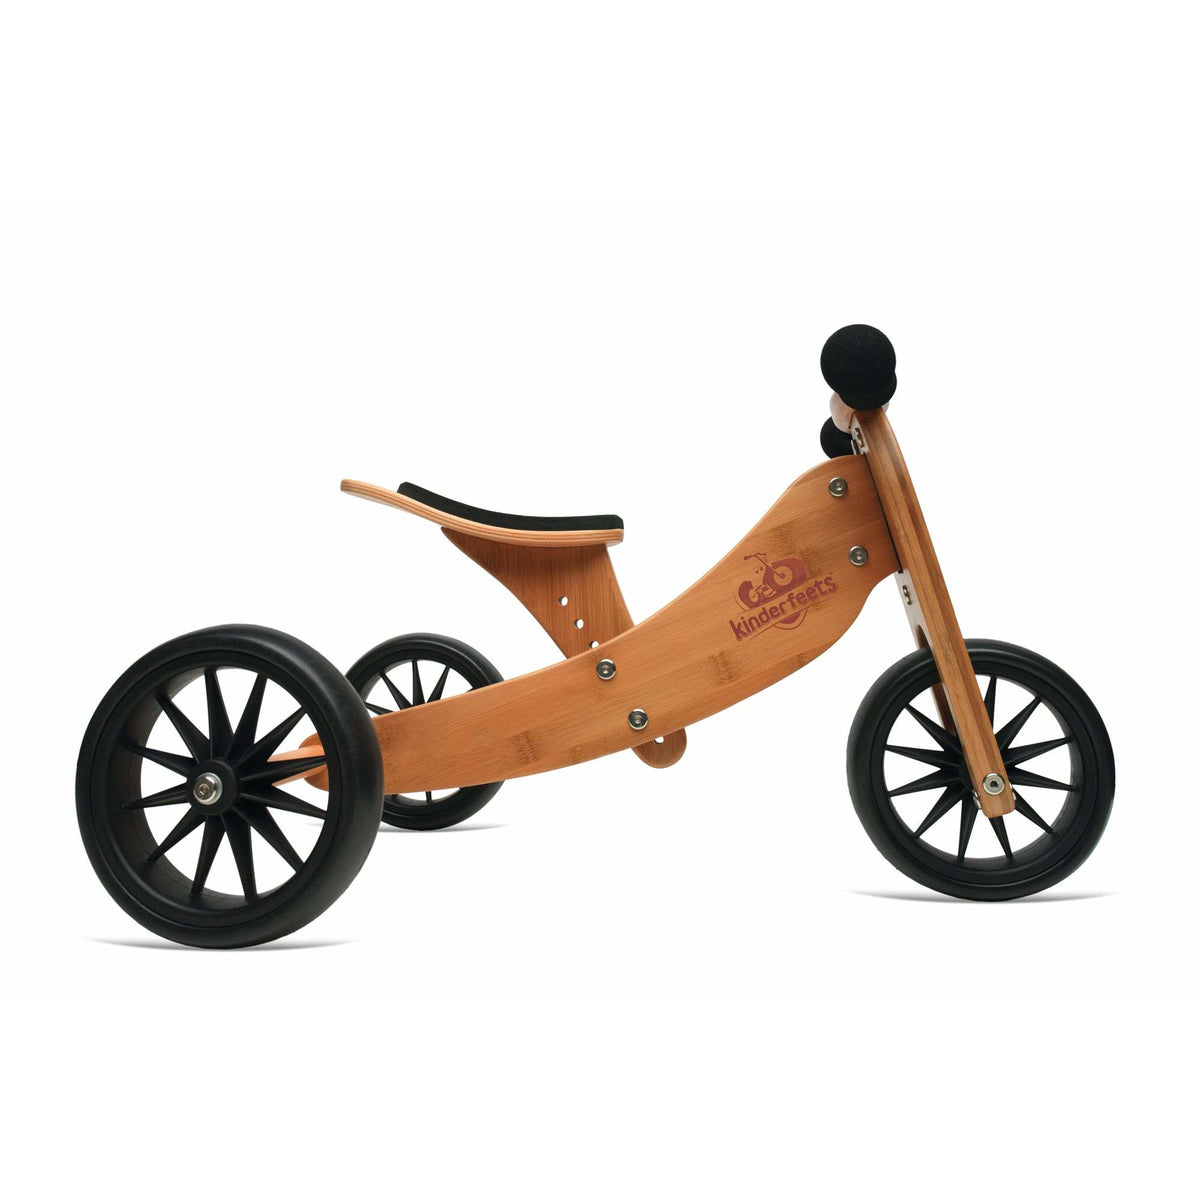 Kinderfeets Tiny Tot 2 in 1 Balance Bike Natural Bamboo canada ontario wooden